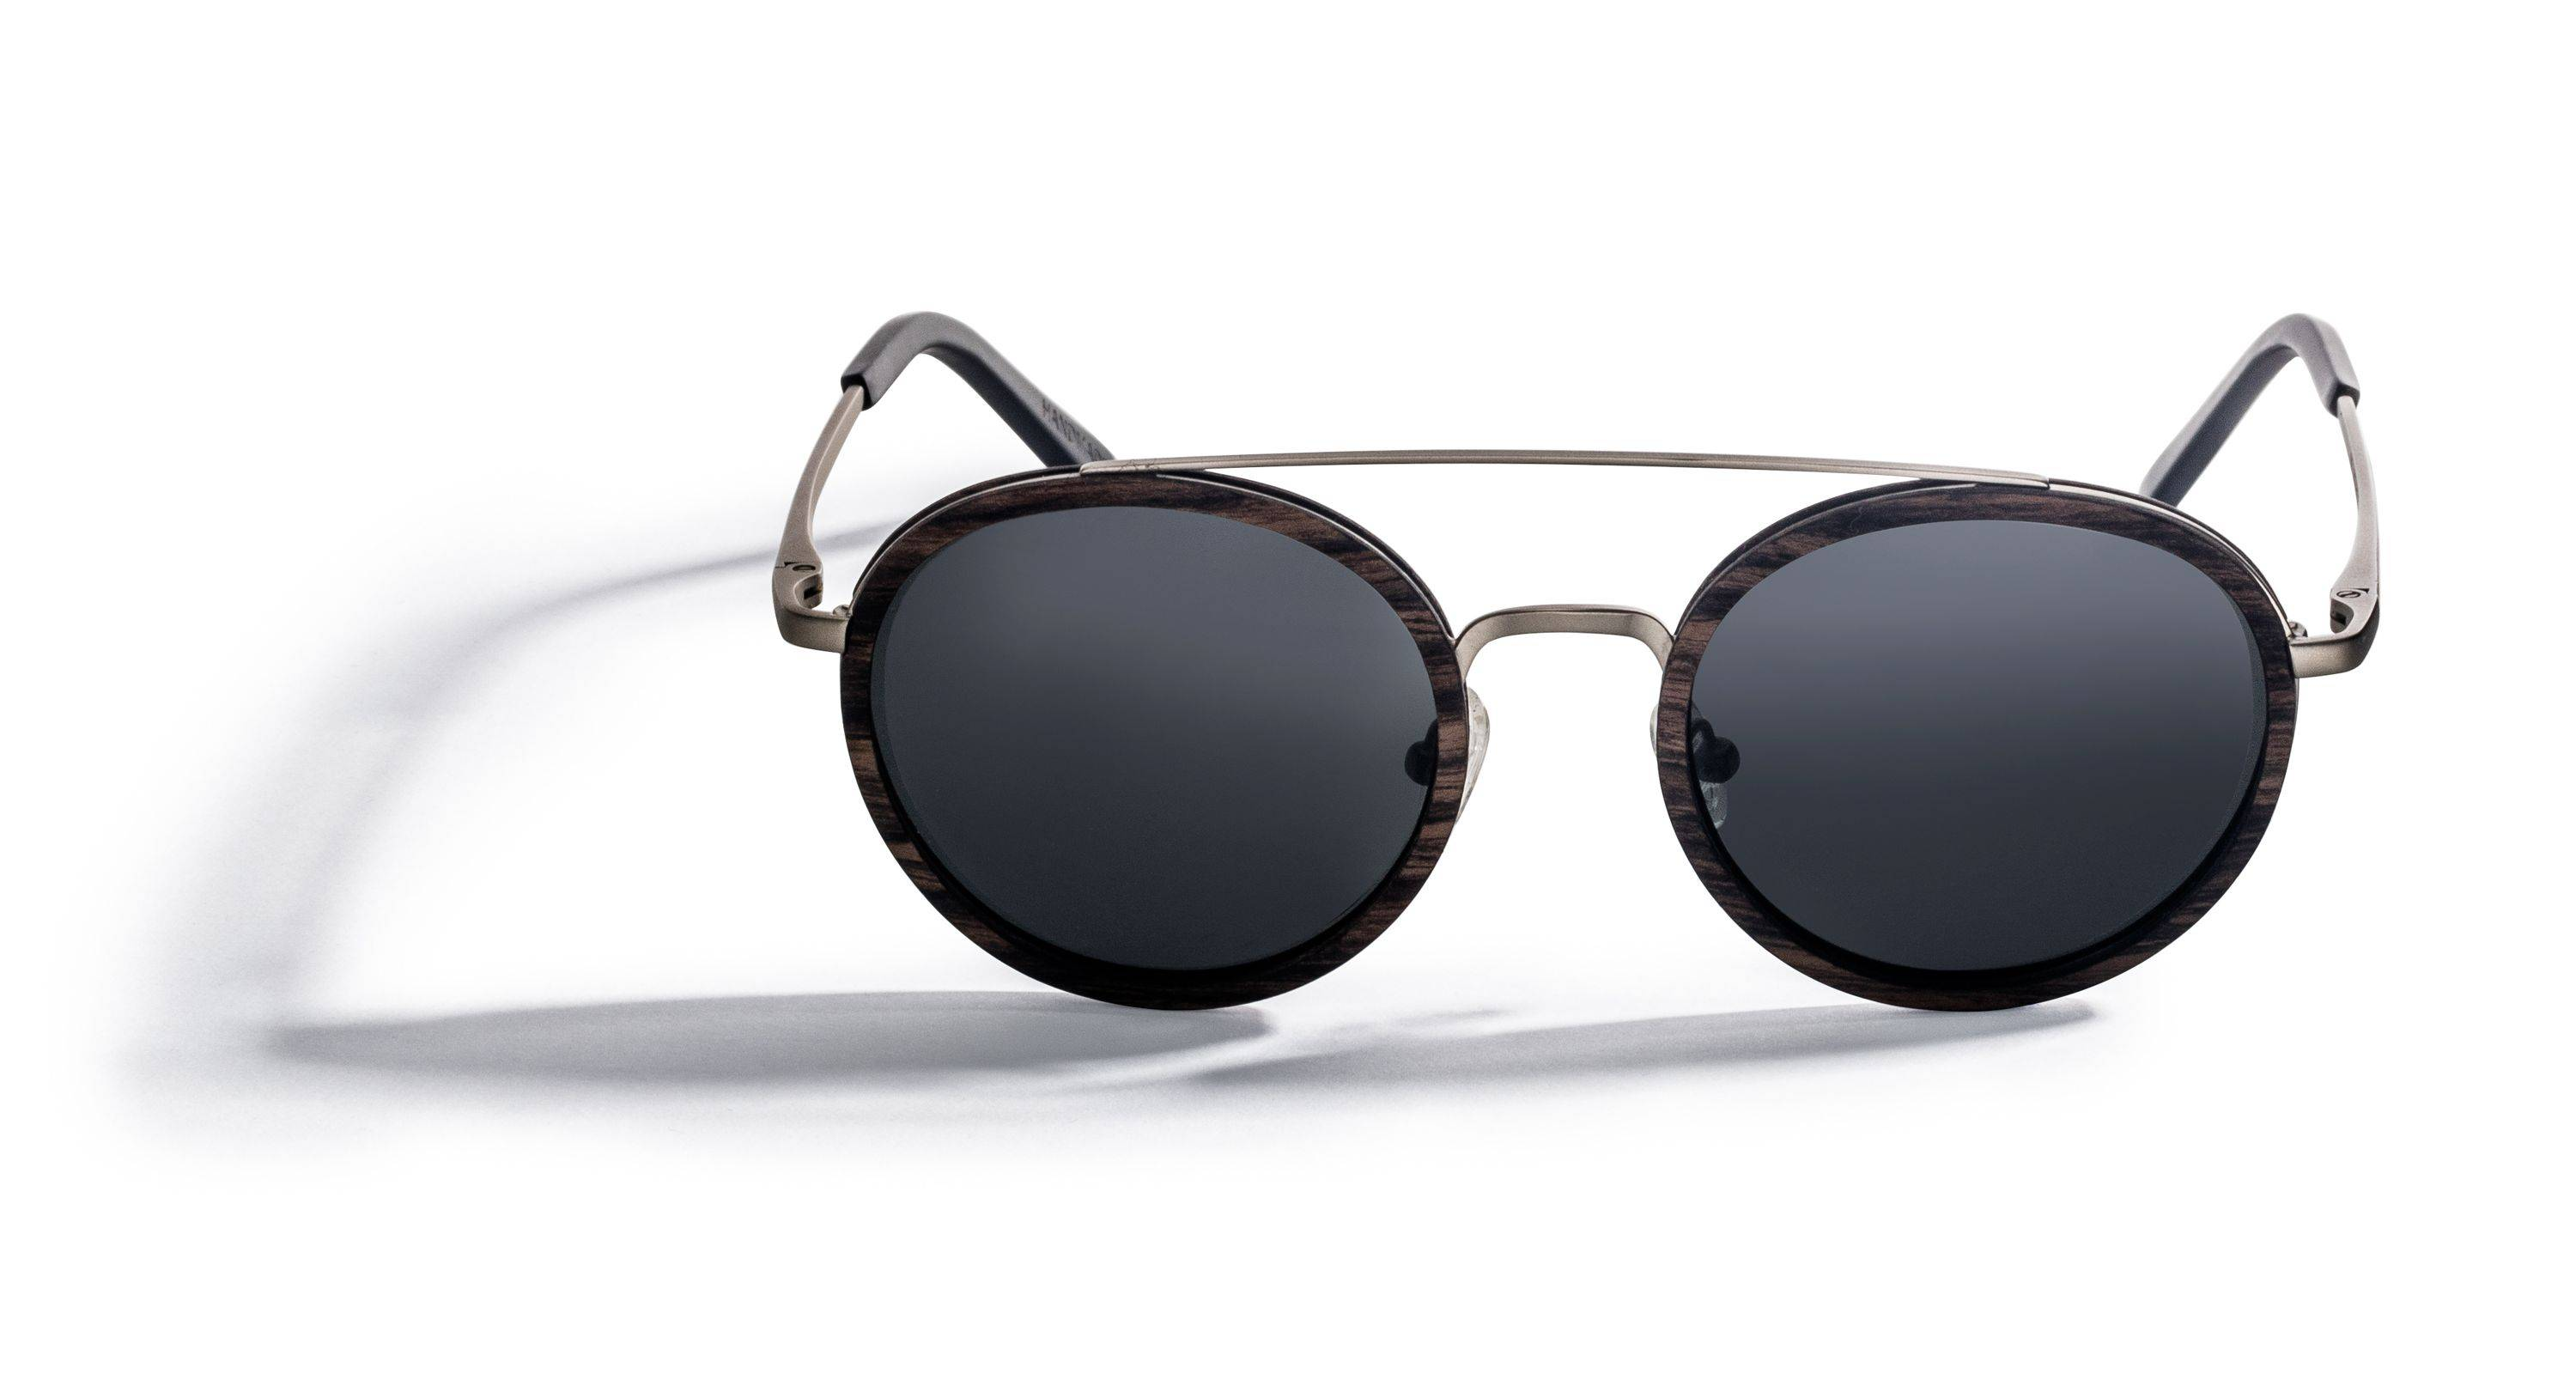 Kraywoods Aspen Silver, Round Double Bridge Sunglasses made from Ebony wood with Polarized Lenses